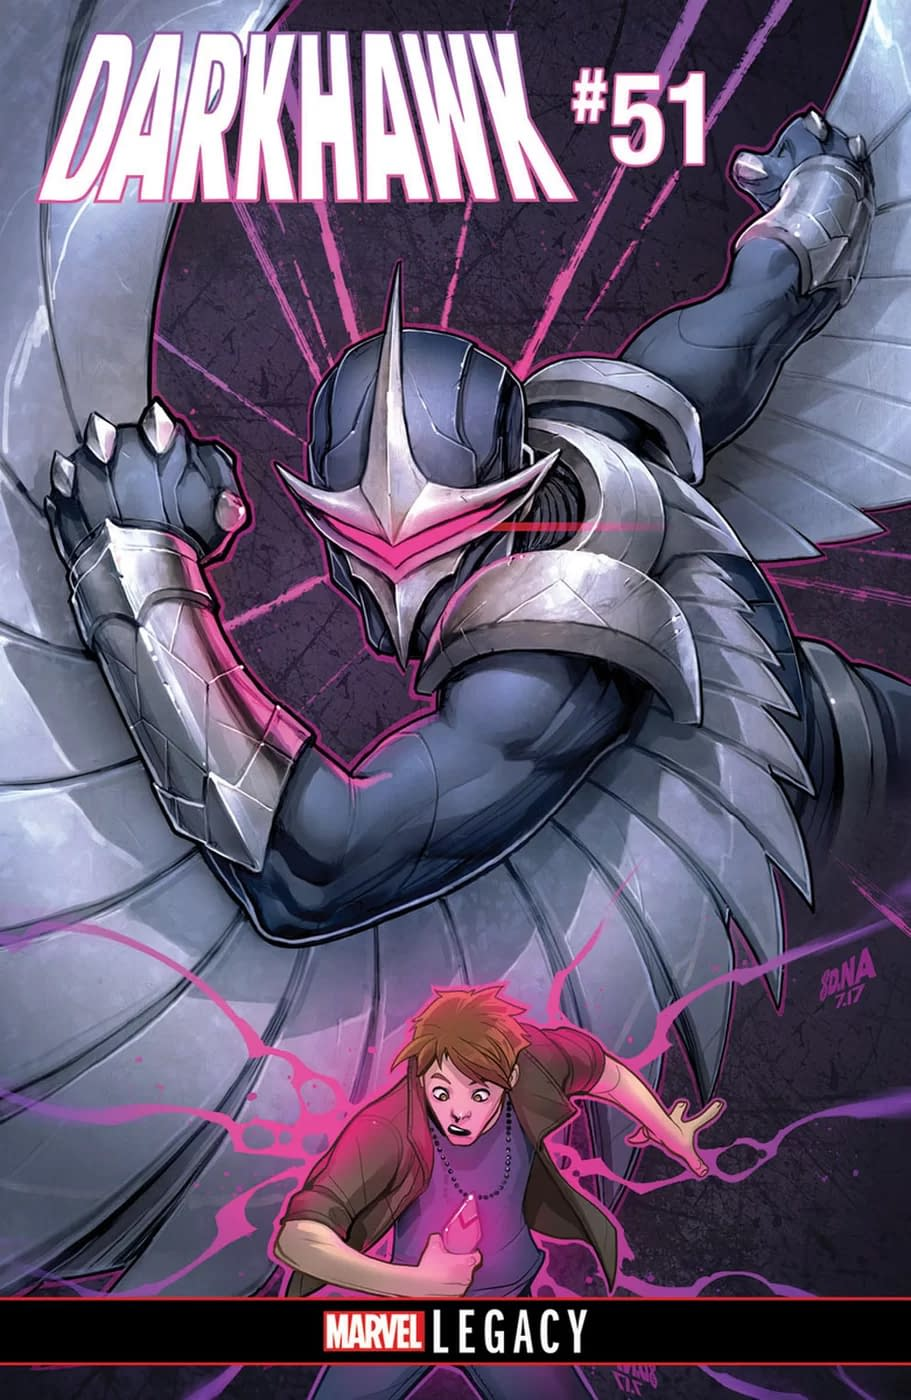 Bowers, Sims, And Walker Bring Back Darkhawk For One Issue Only In Marvel Legacy